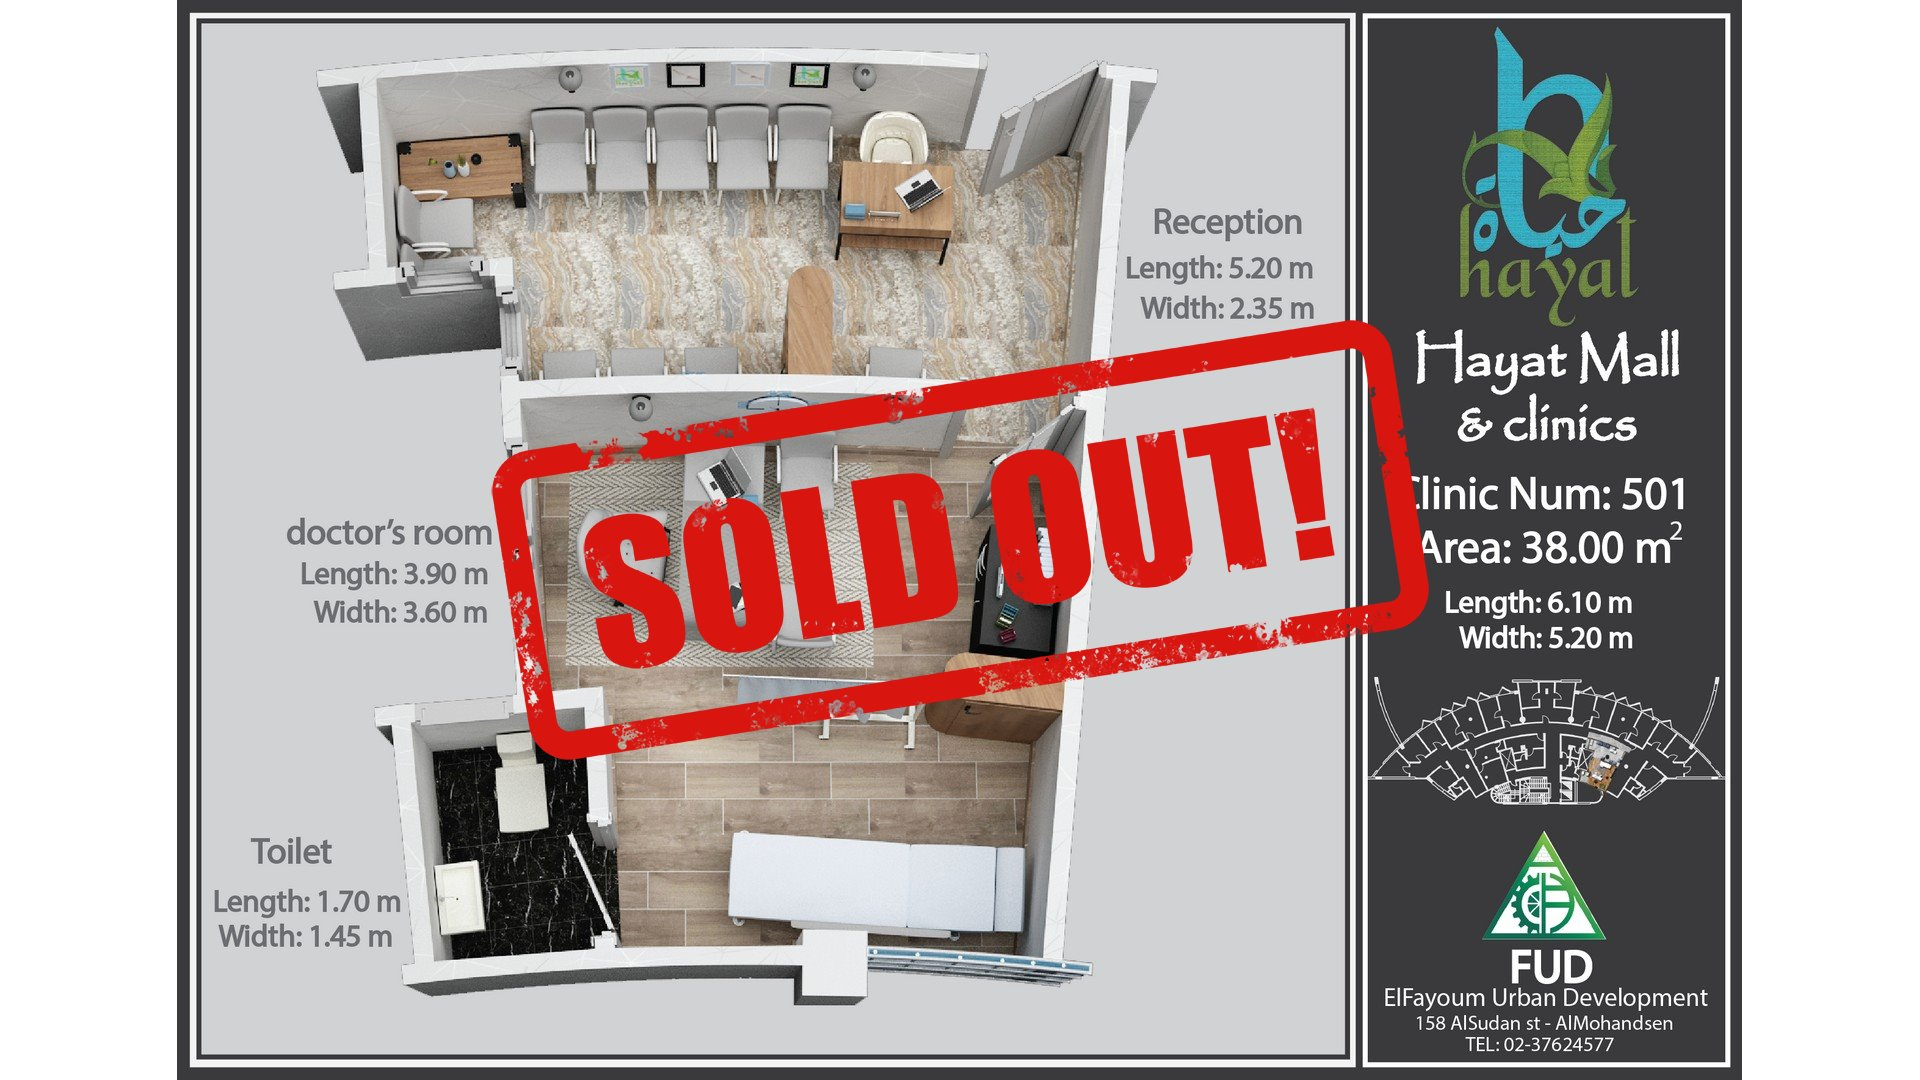 hayat-clinics.com-501-copy sold out